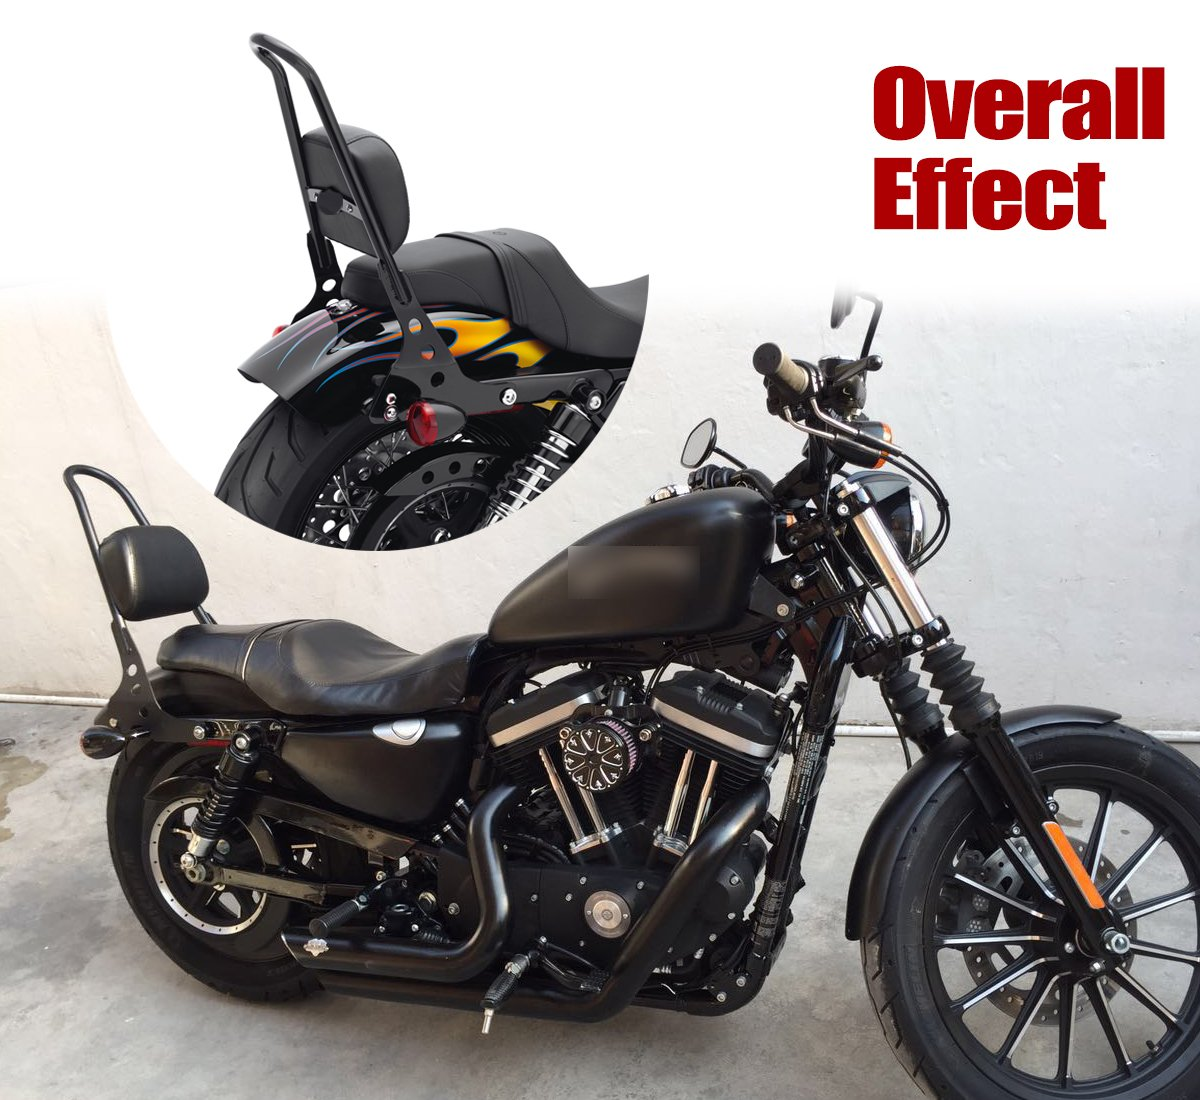 E-Most Scrub Sissy Bar Adjustable Solid Steel Passenger Backrest Luggage Rack For Harley Sportster XL 883 1200 48